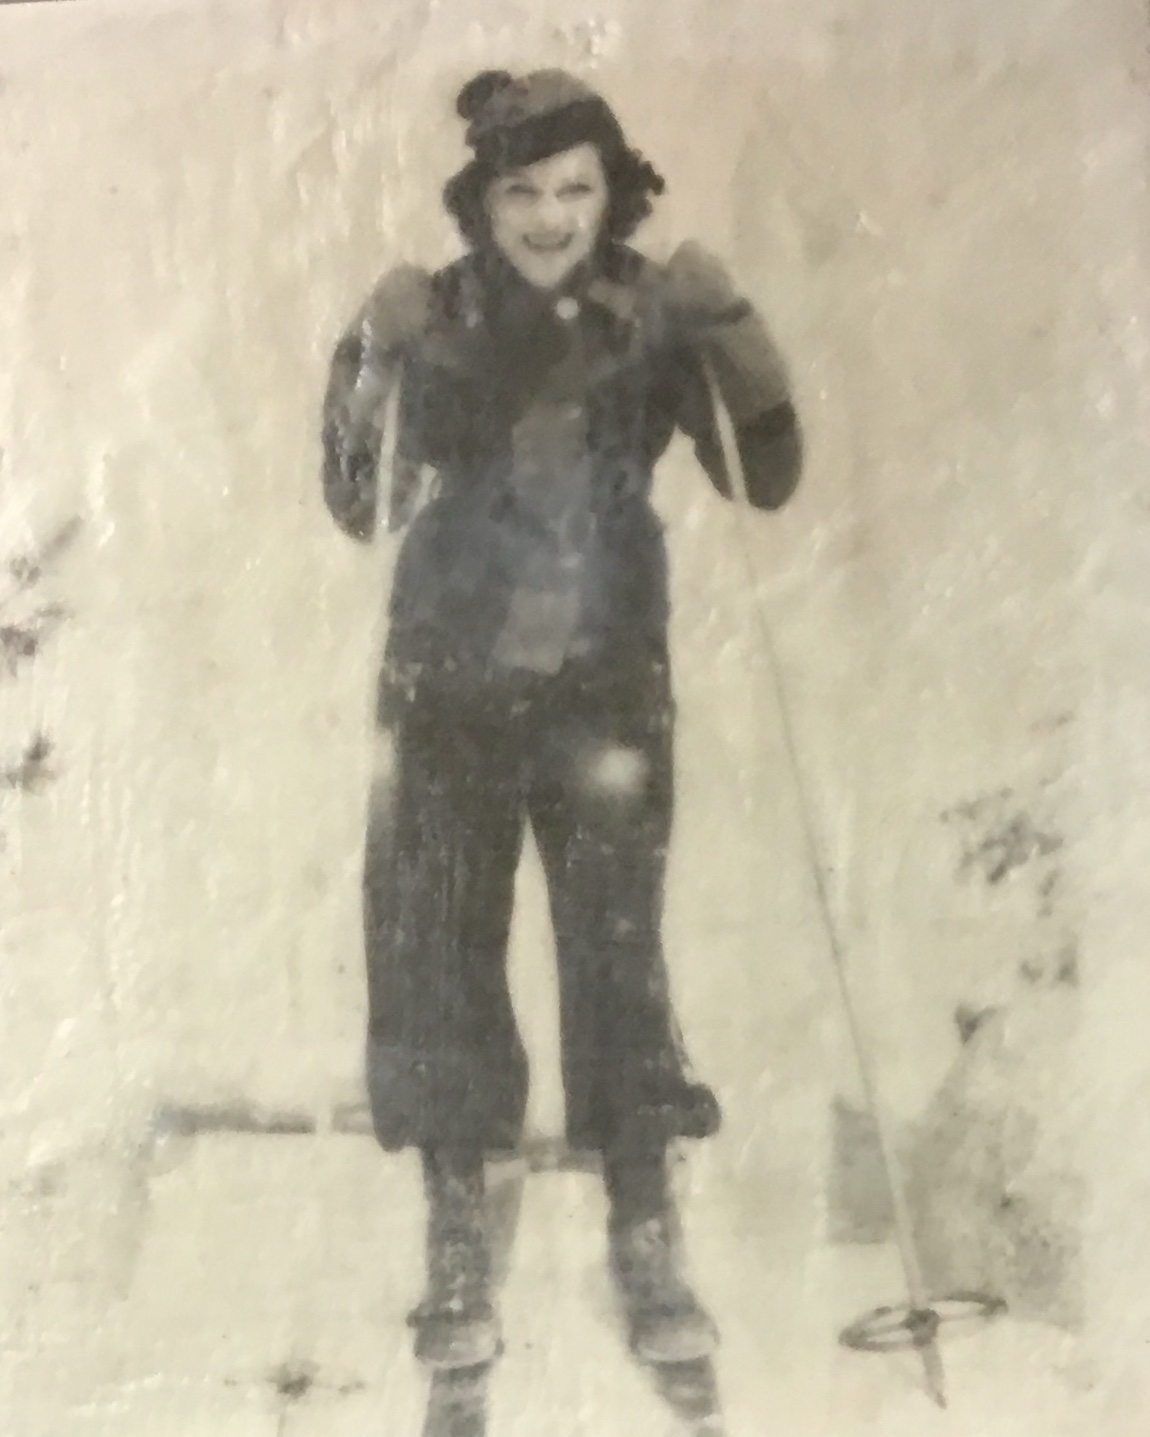 Vintage Skier 4, Encaustic painting by Lee Anne LaForge | Effusion Art Gallery + Cast Glass Studio, Invermere BC